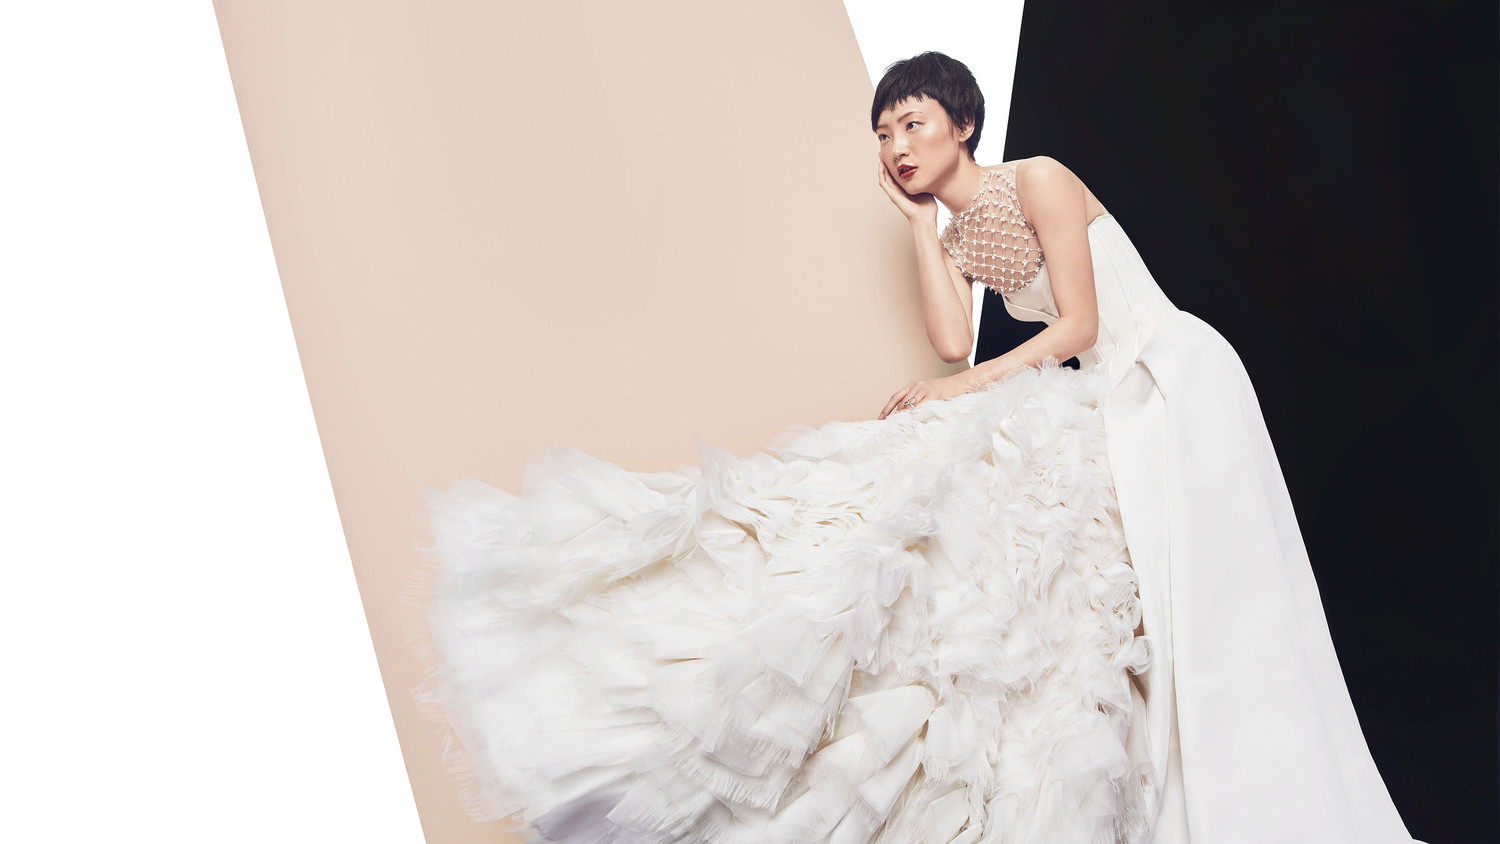 Dramatic Wedding Dresses For The Bride Who Wants To Make A